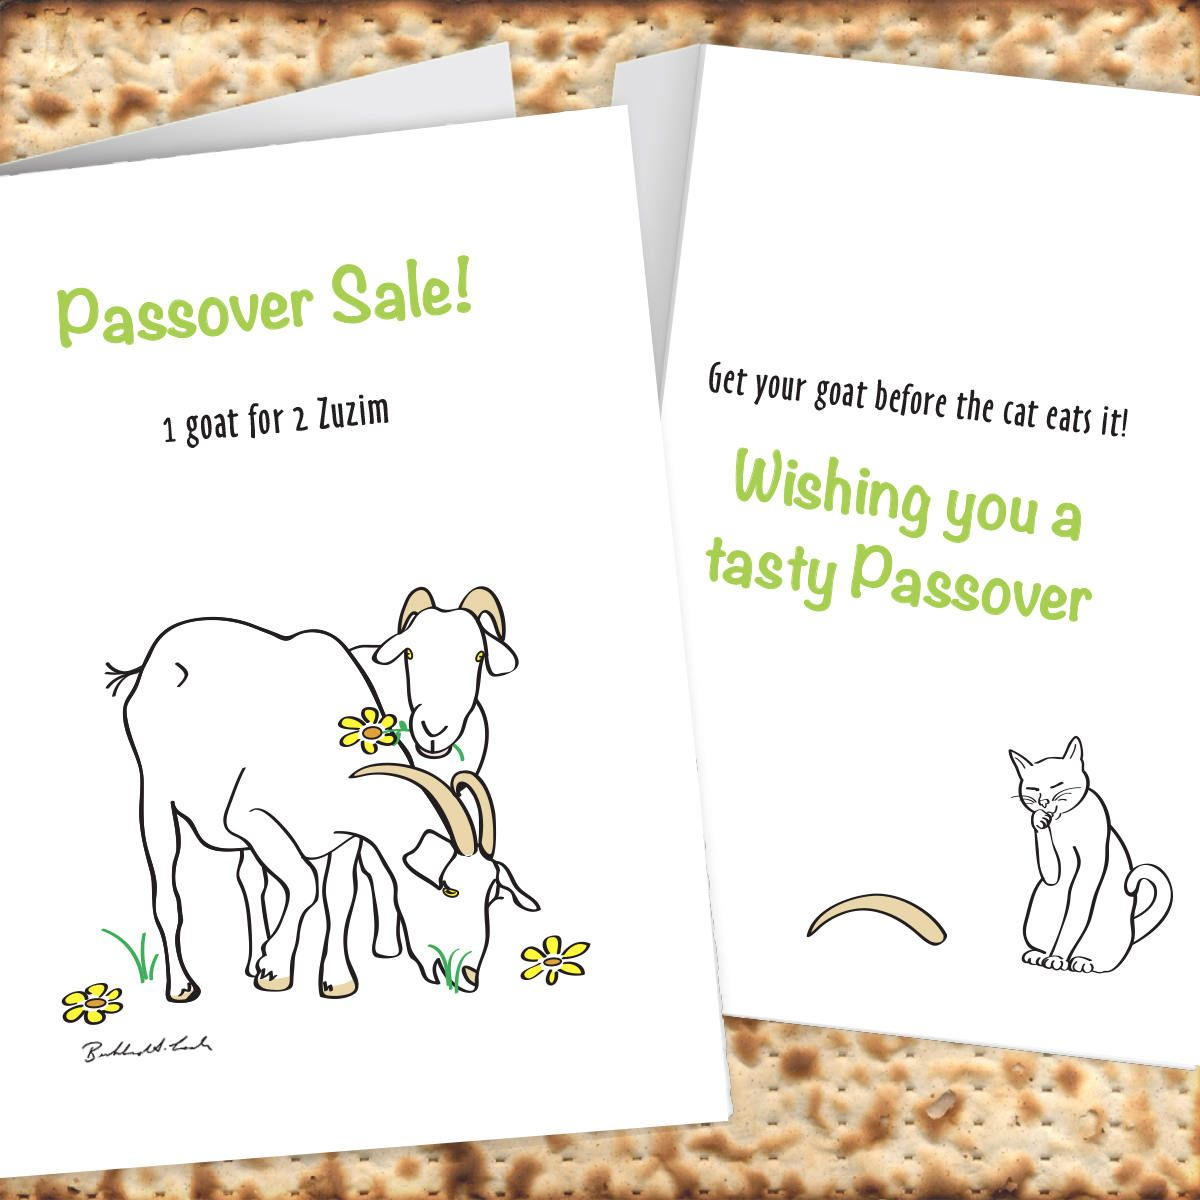 Passover goat for sale card for two zuzim chad gadya instant passover goat for sale card for two zuzim chad gadya instant download print kristyandbryce Choice Image